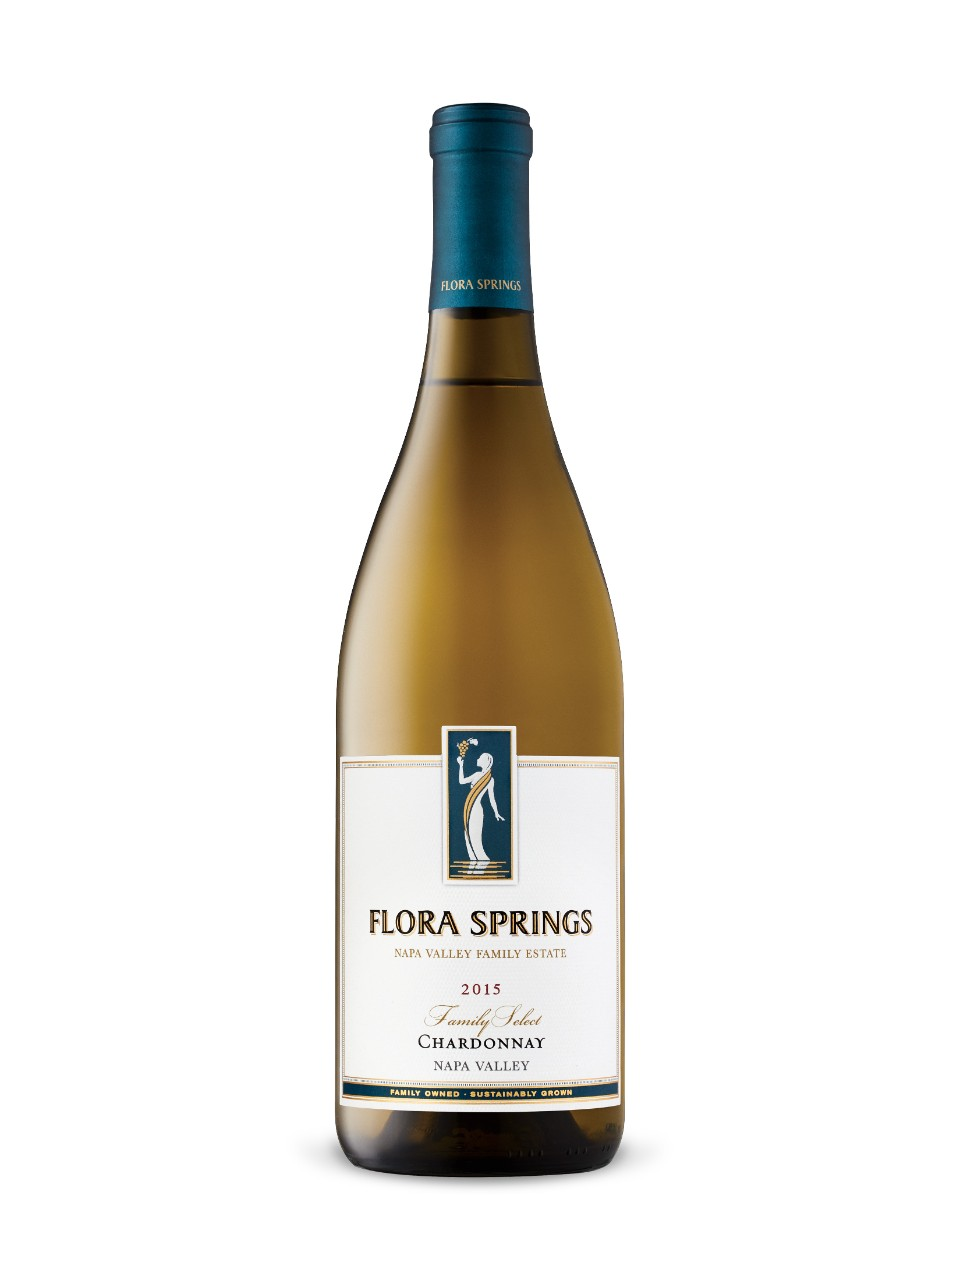 Flora Springs Family Select Chardonnay 2015